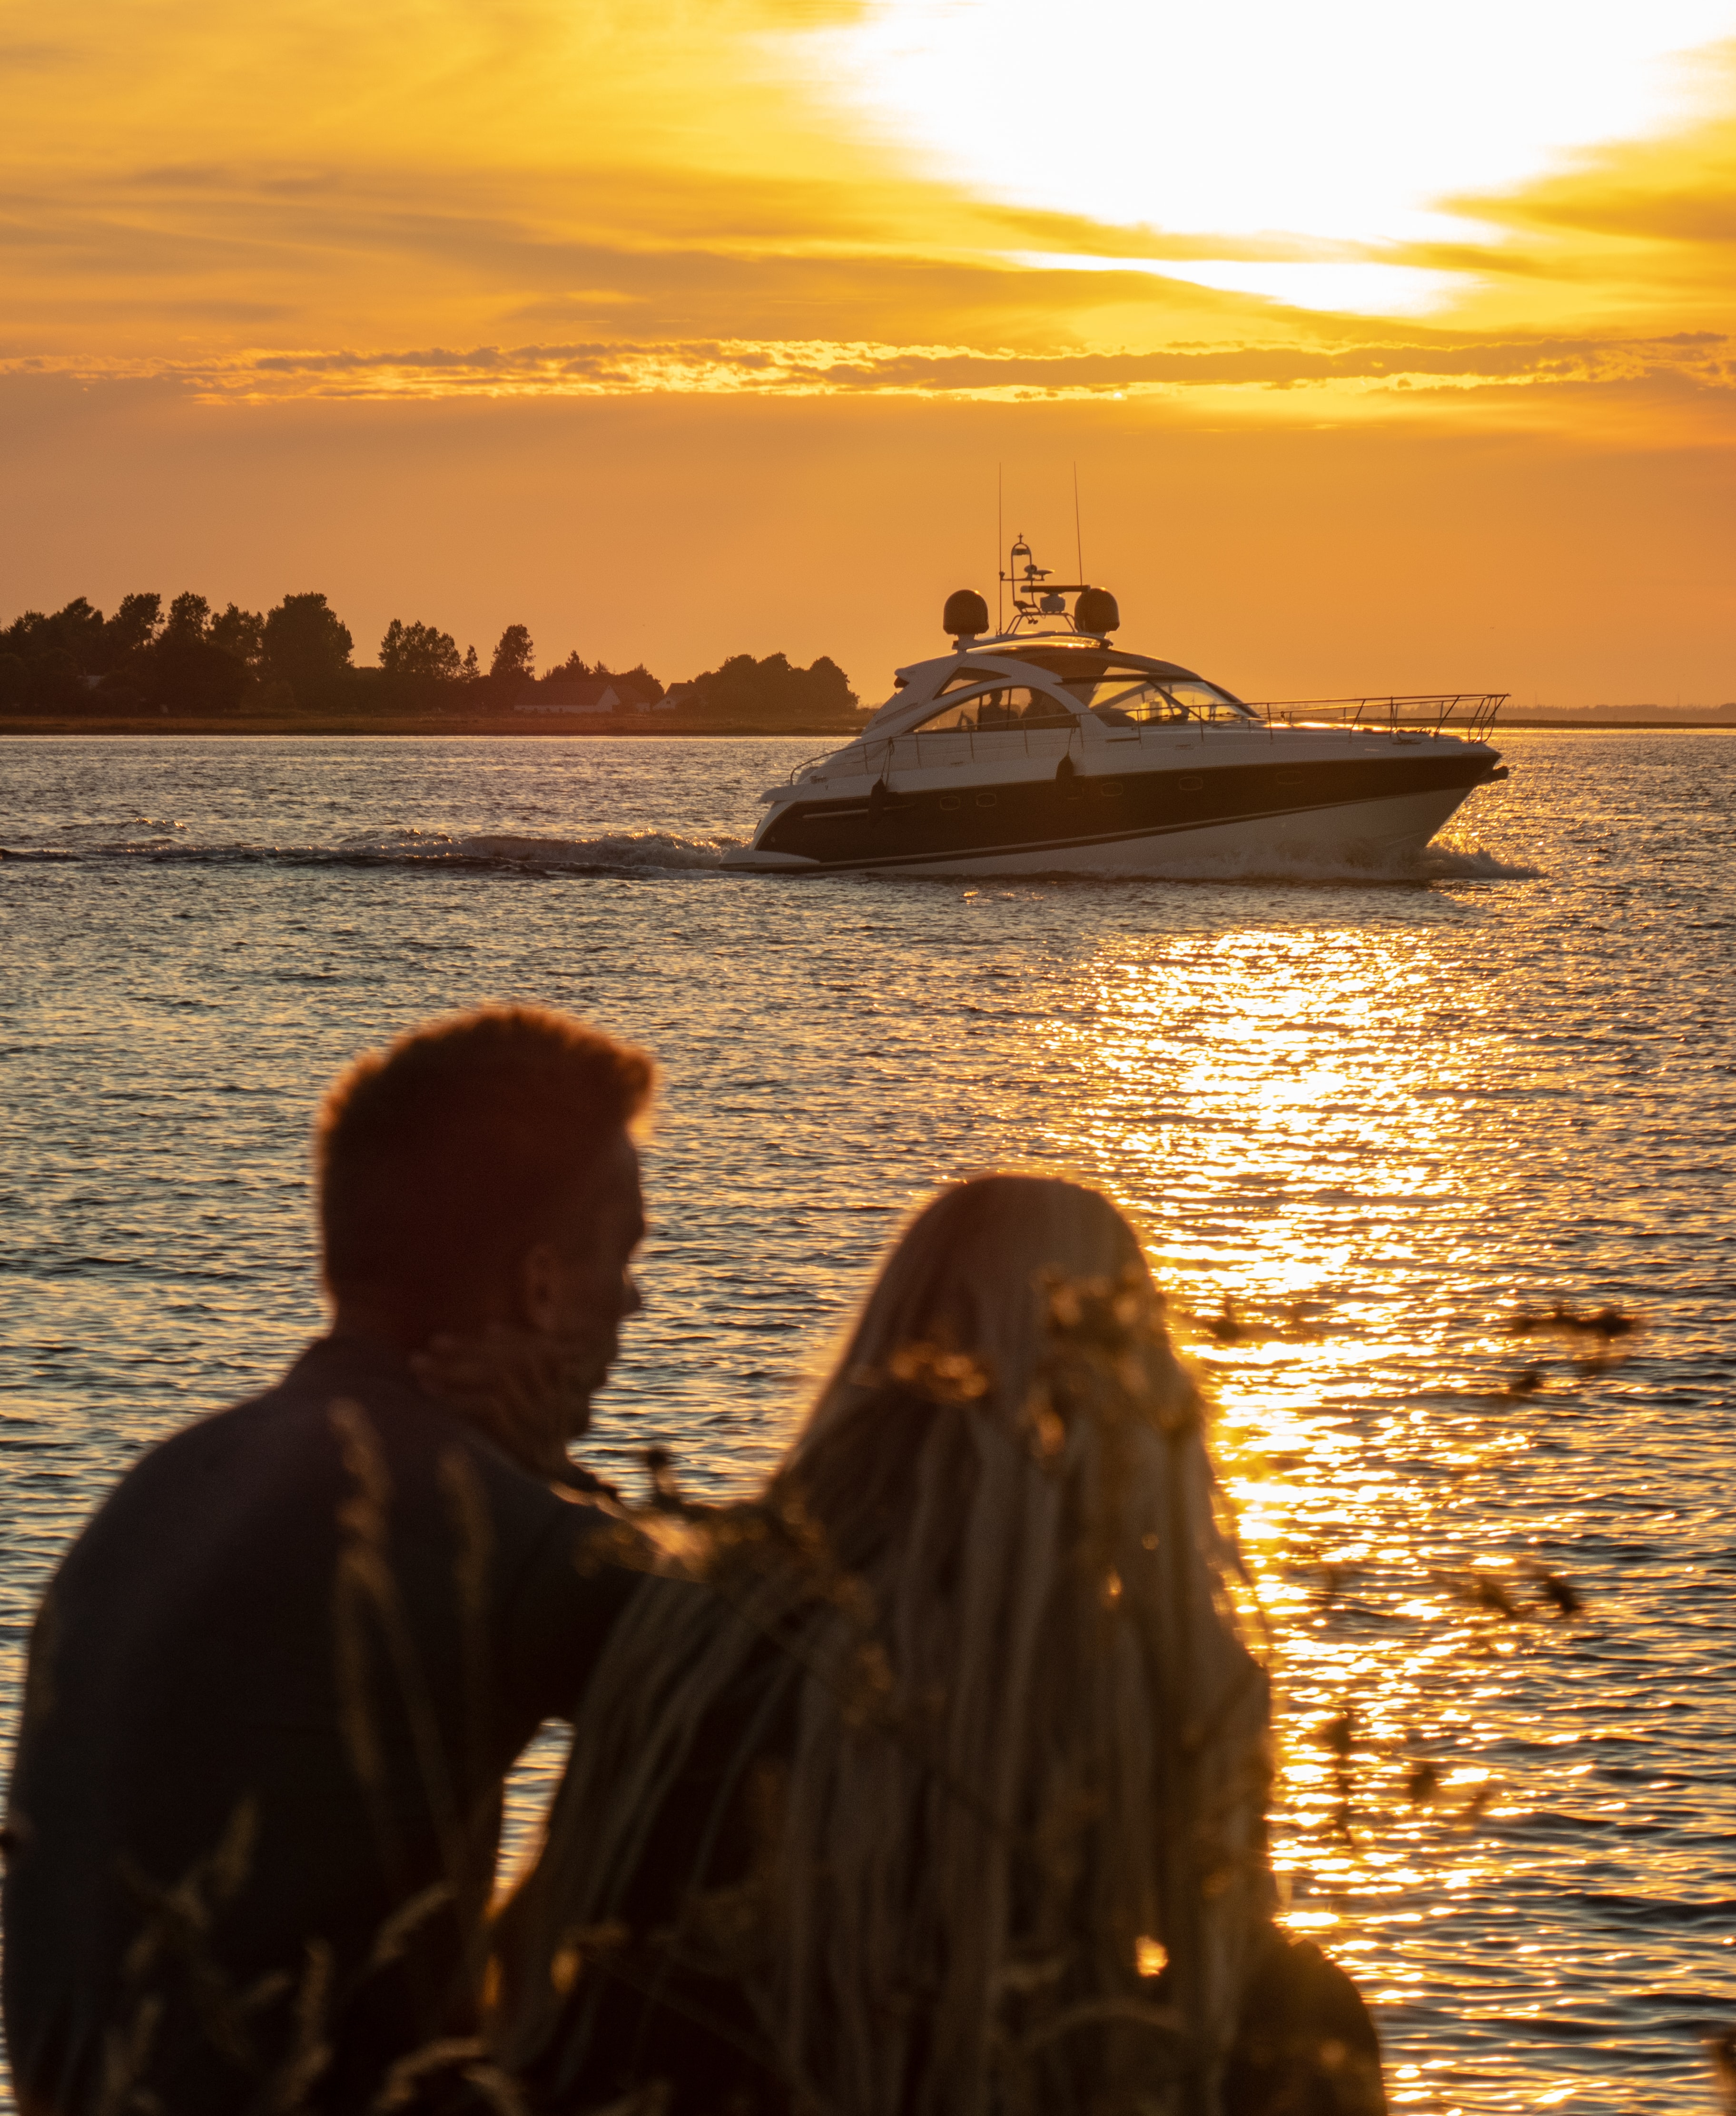 man and woman watching sunset by the sea with view of cabin cruiser